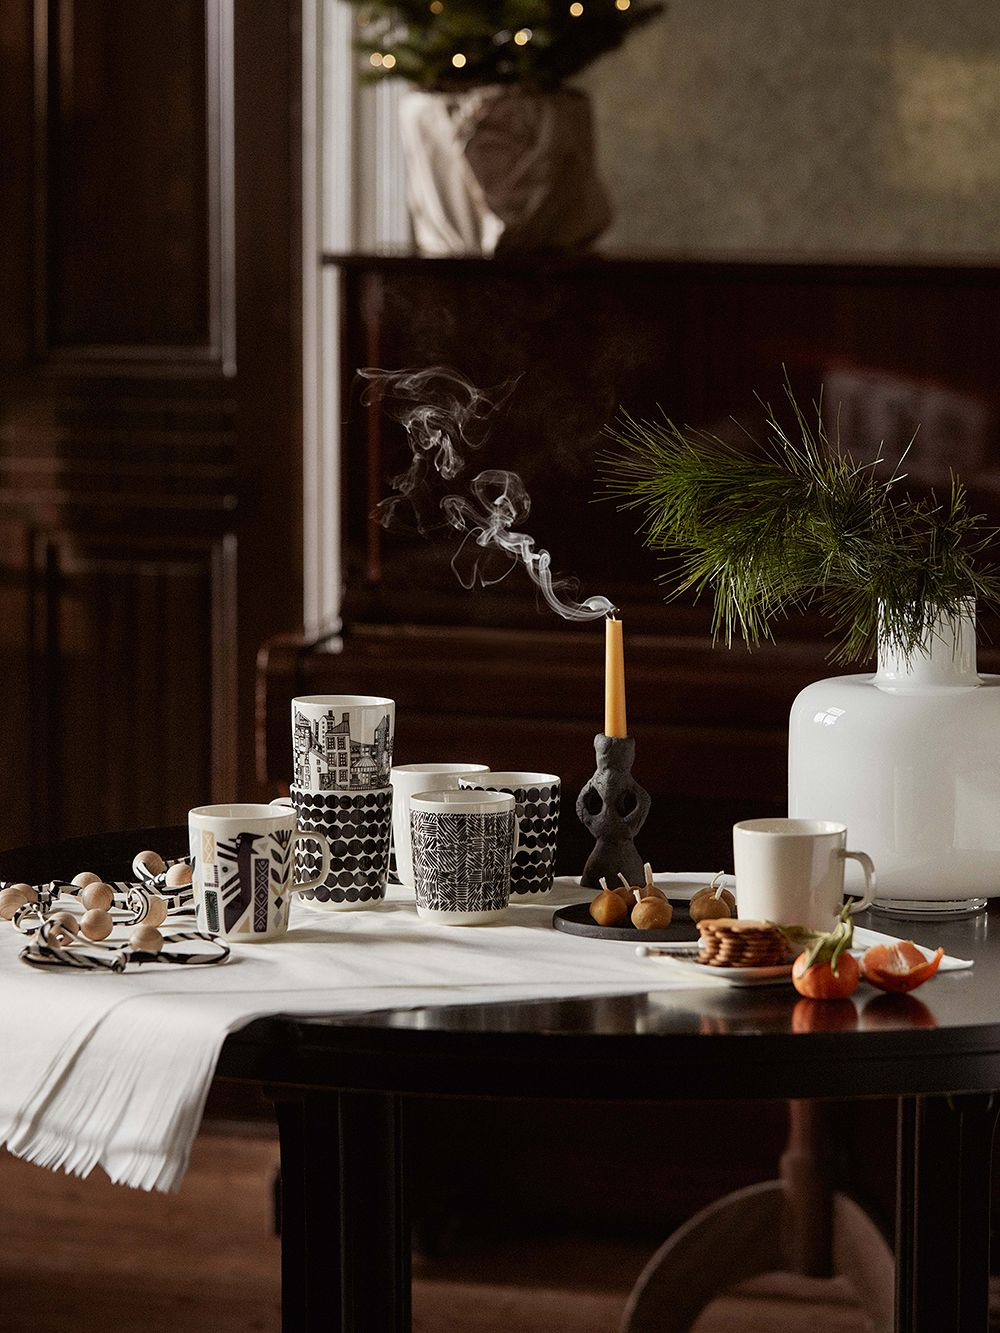 Marimekko Oiva tableware collection